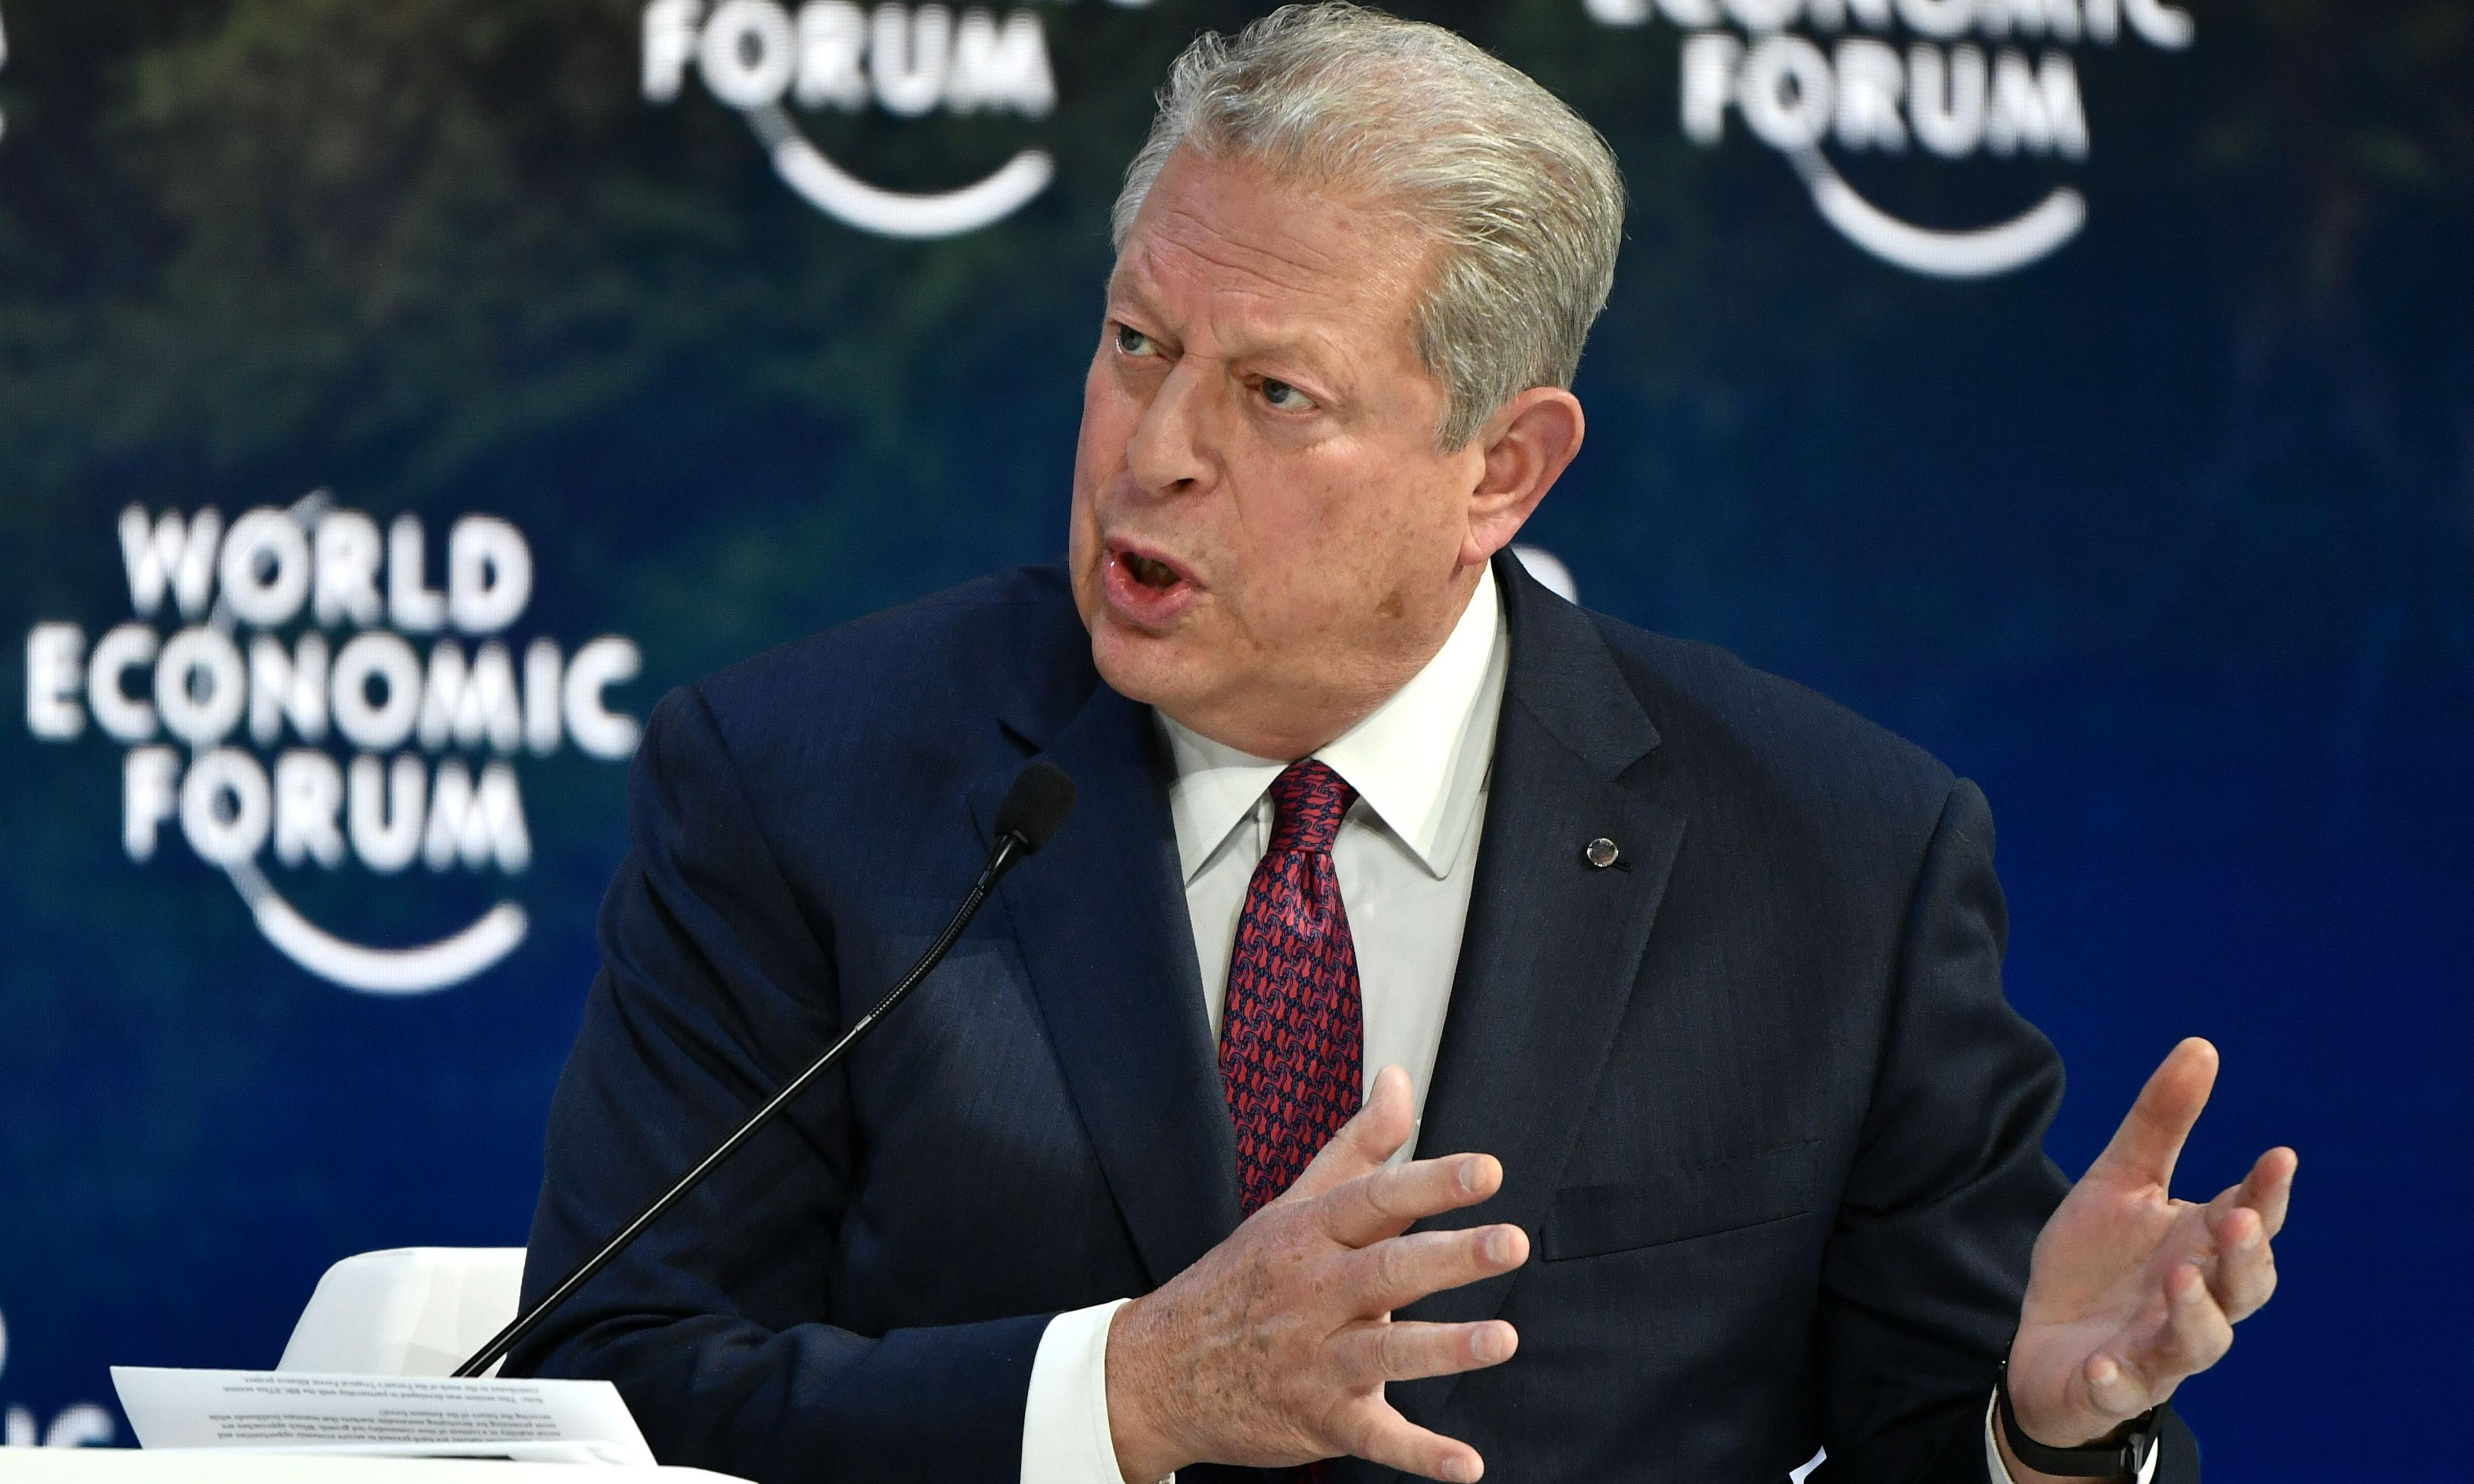 'This is Dunkirk. This is 9/11': Al Gore implores Davos to tackle climate crisis